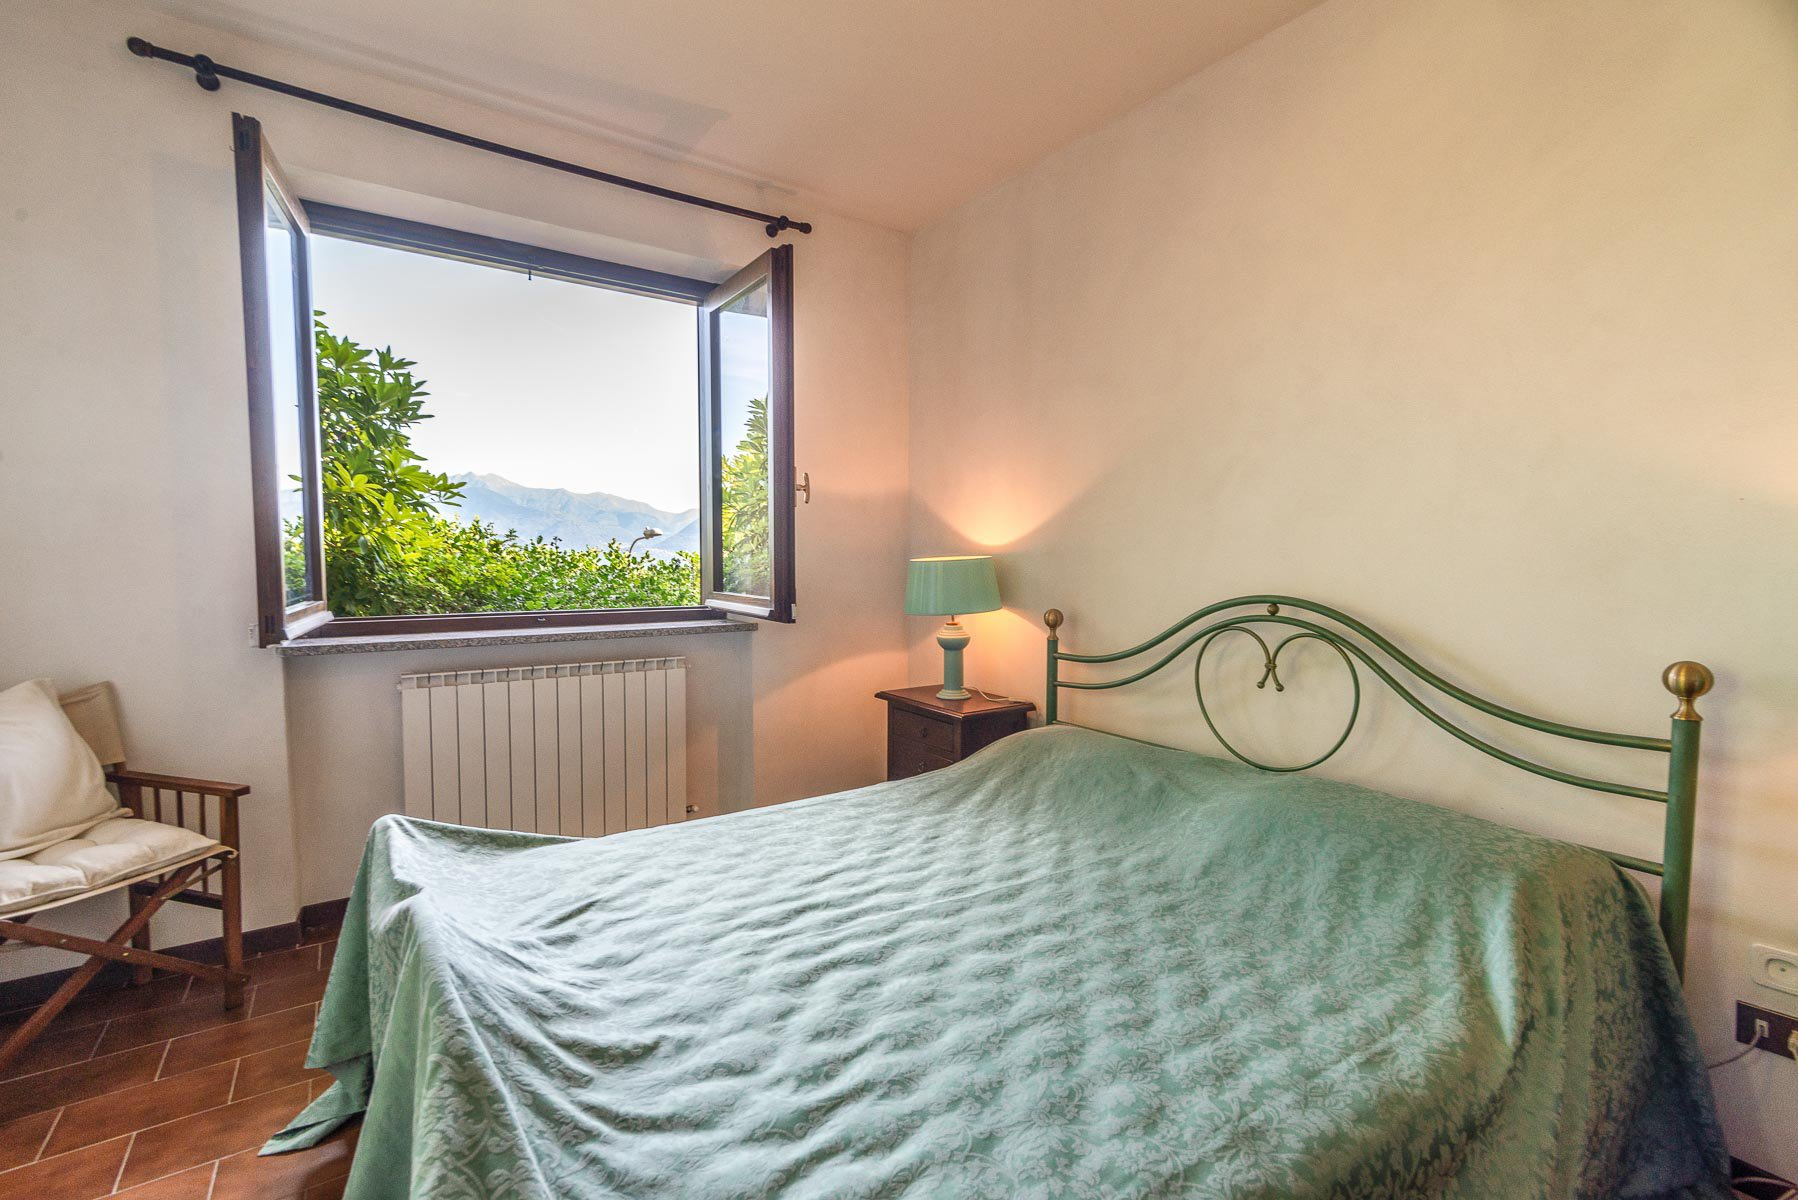 Villa for sale on the hill of Stresa with lake view- bedroom